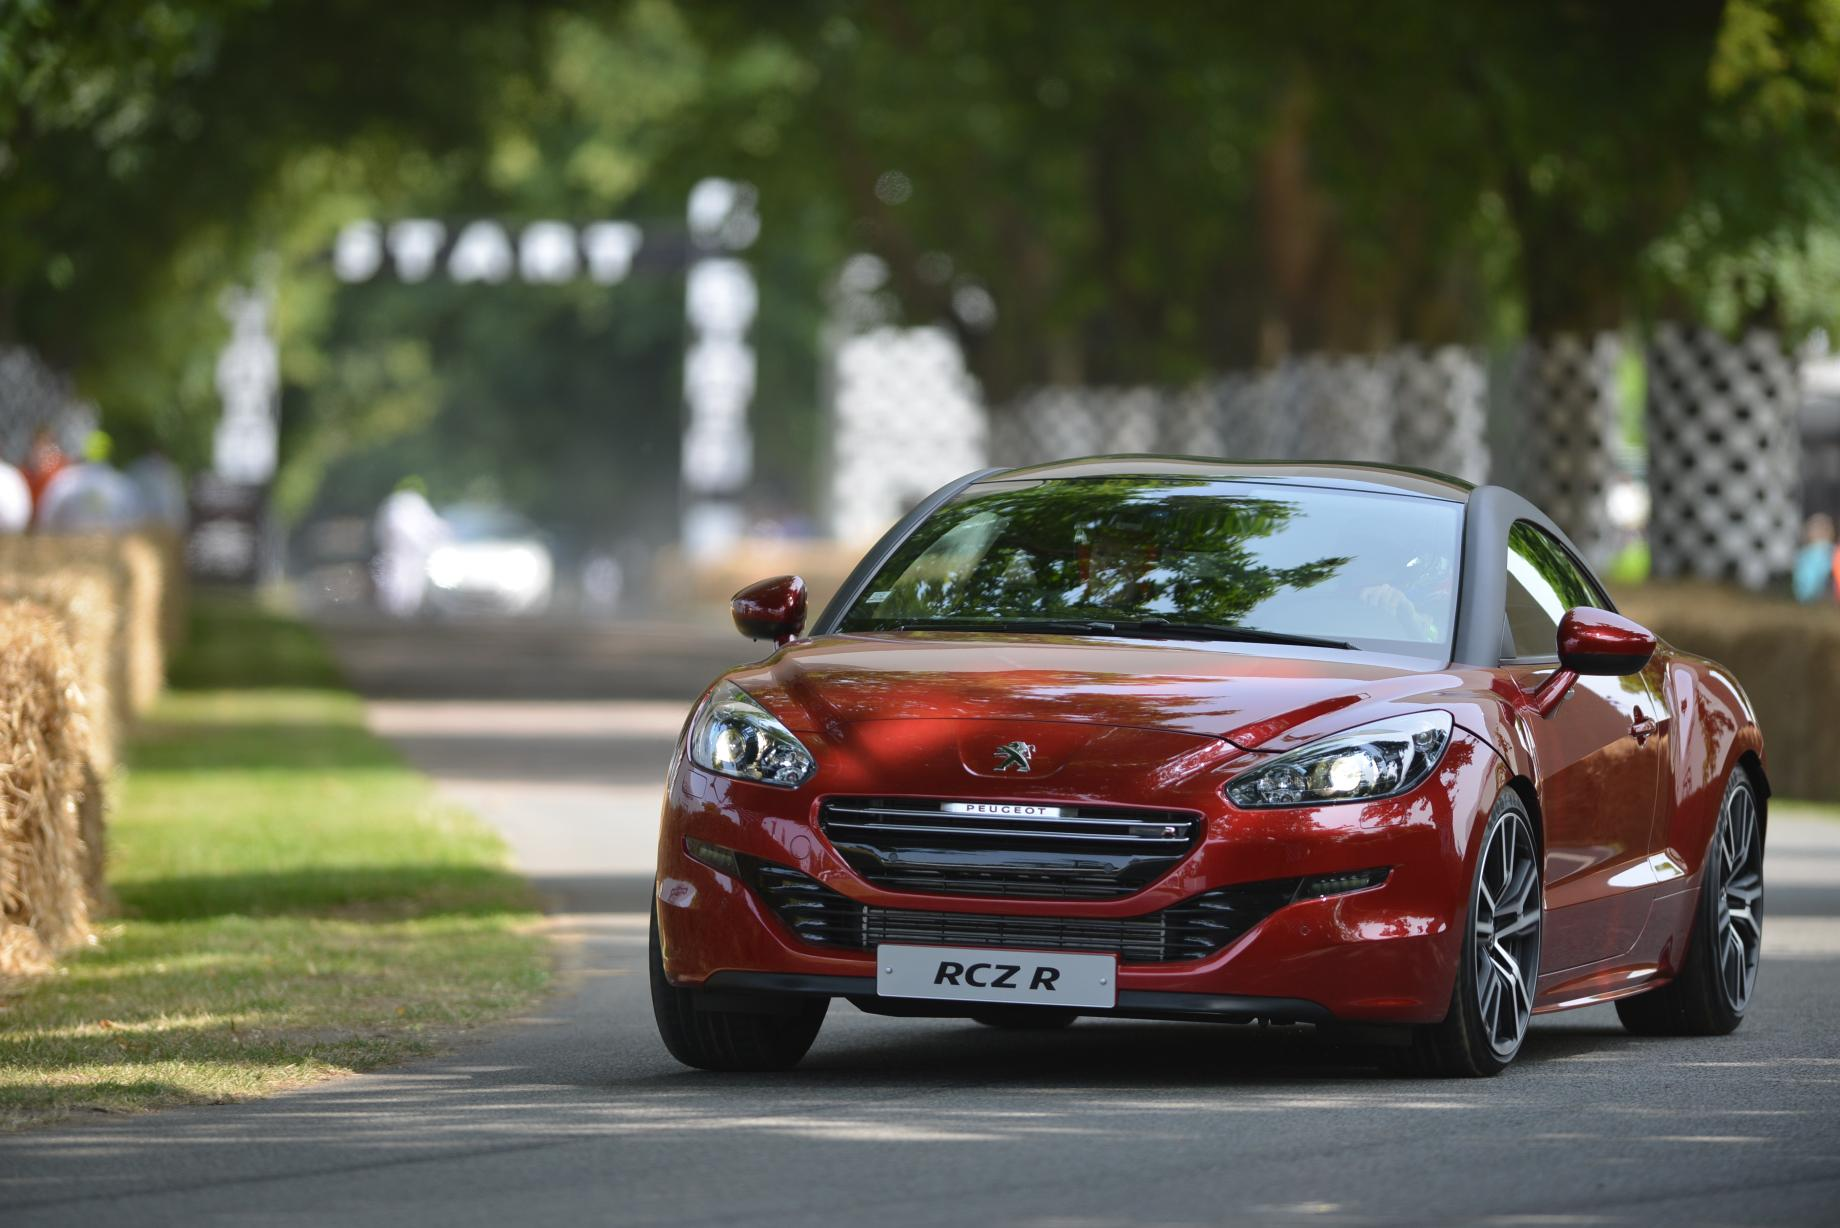 peugeot rcz r takes on goodwood hill autoevolution. Black Bedroom Furniture Sets. Home Design Ideas